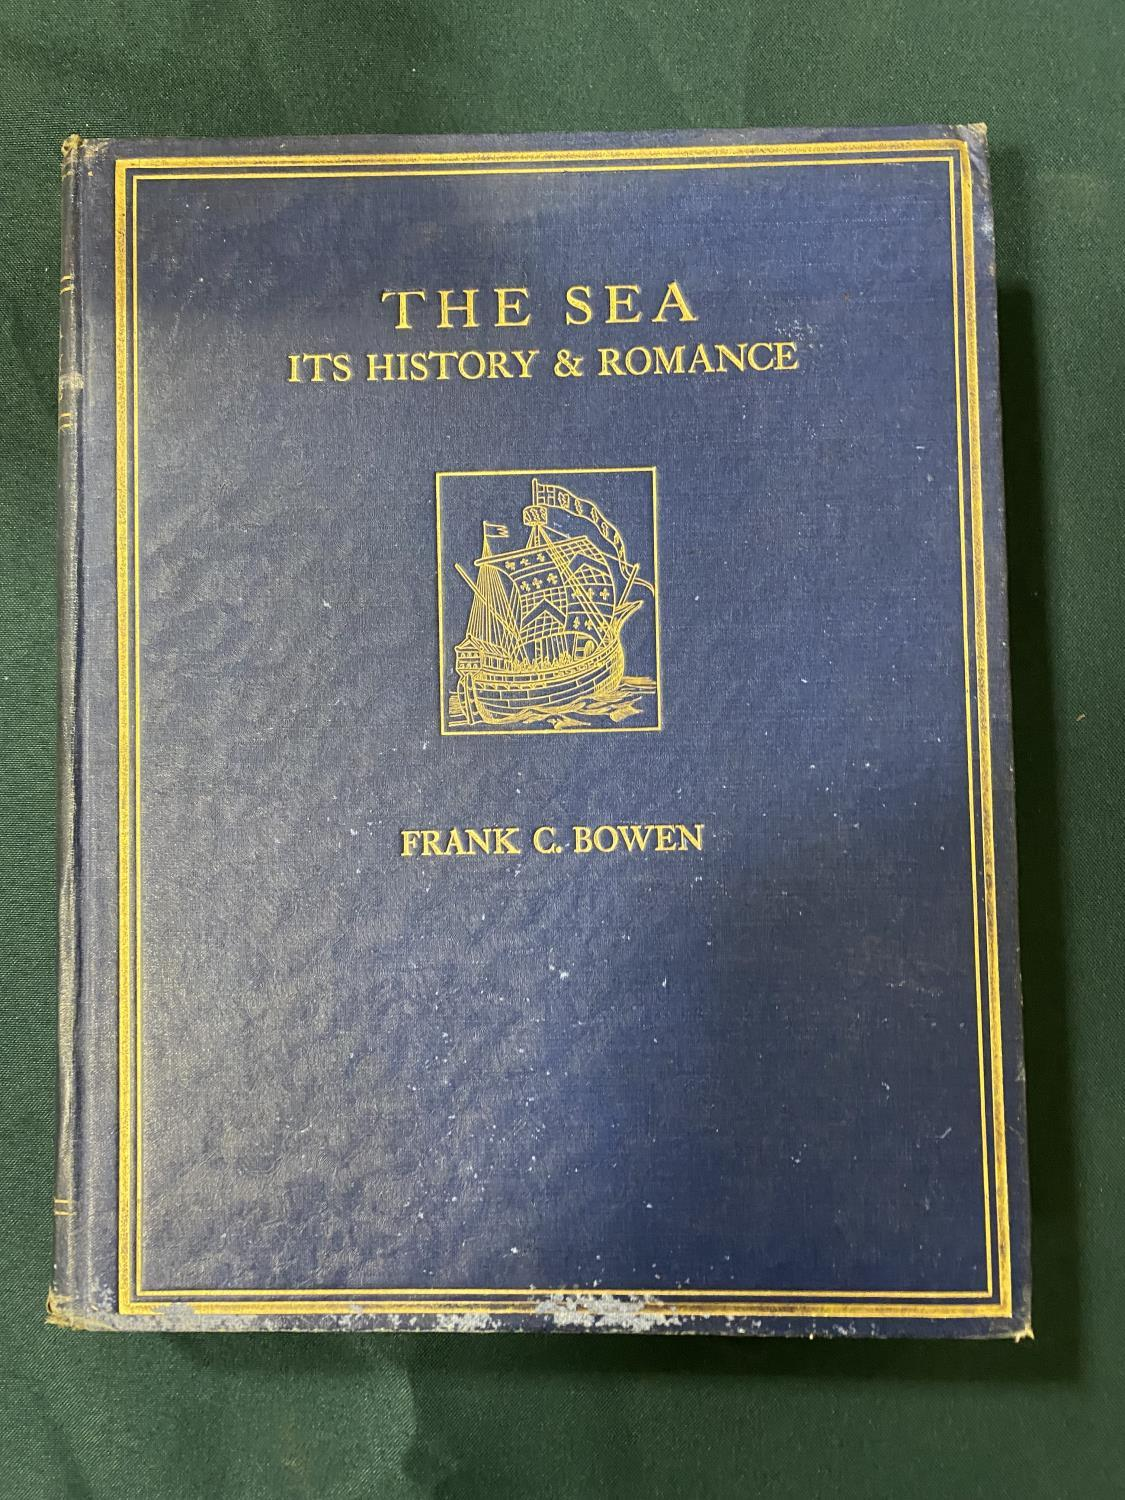 Bowen, Frank Charles. The Sea, Its History and Romance, 4 volumes, first edition, plates, some - Image 2 of 6